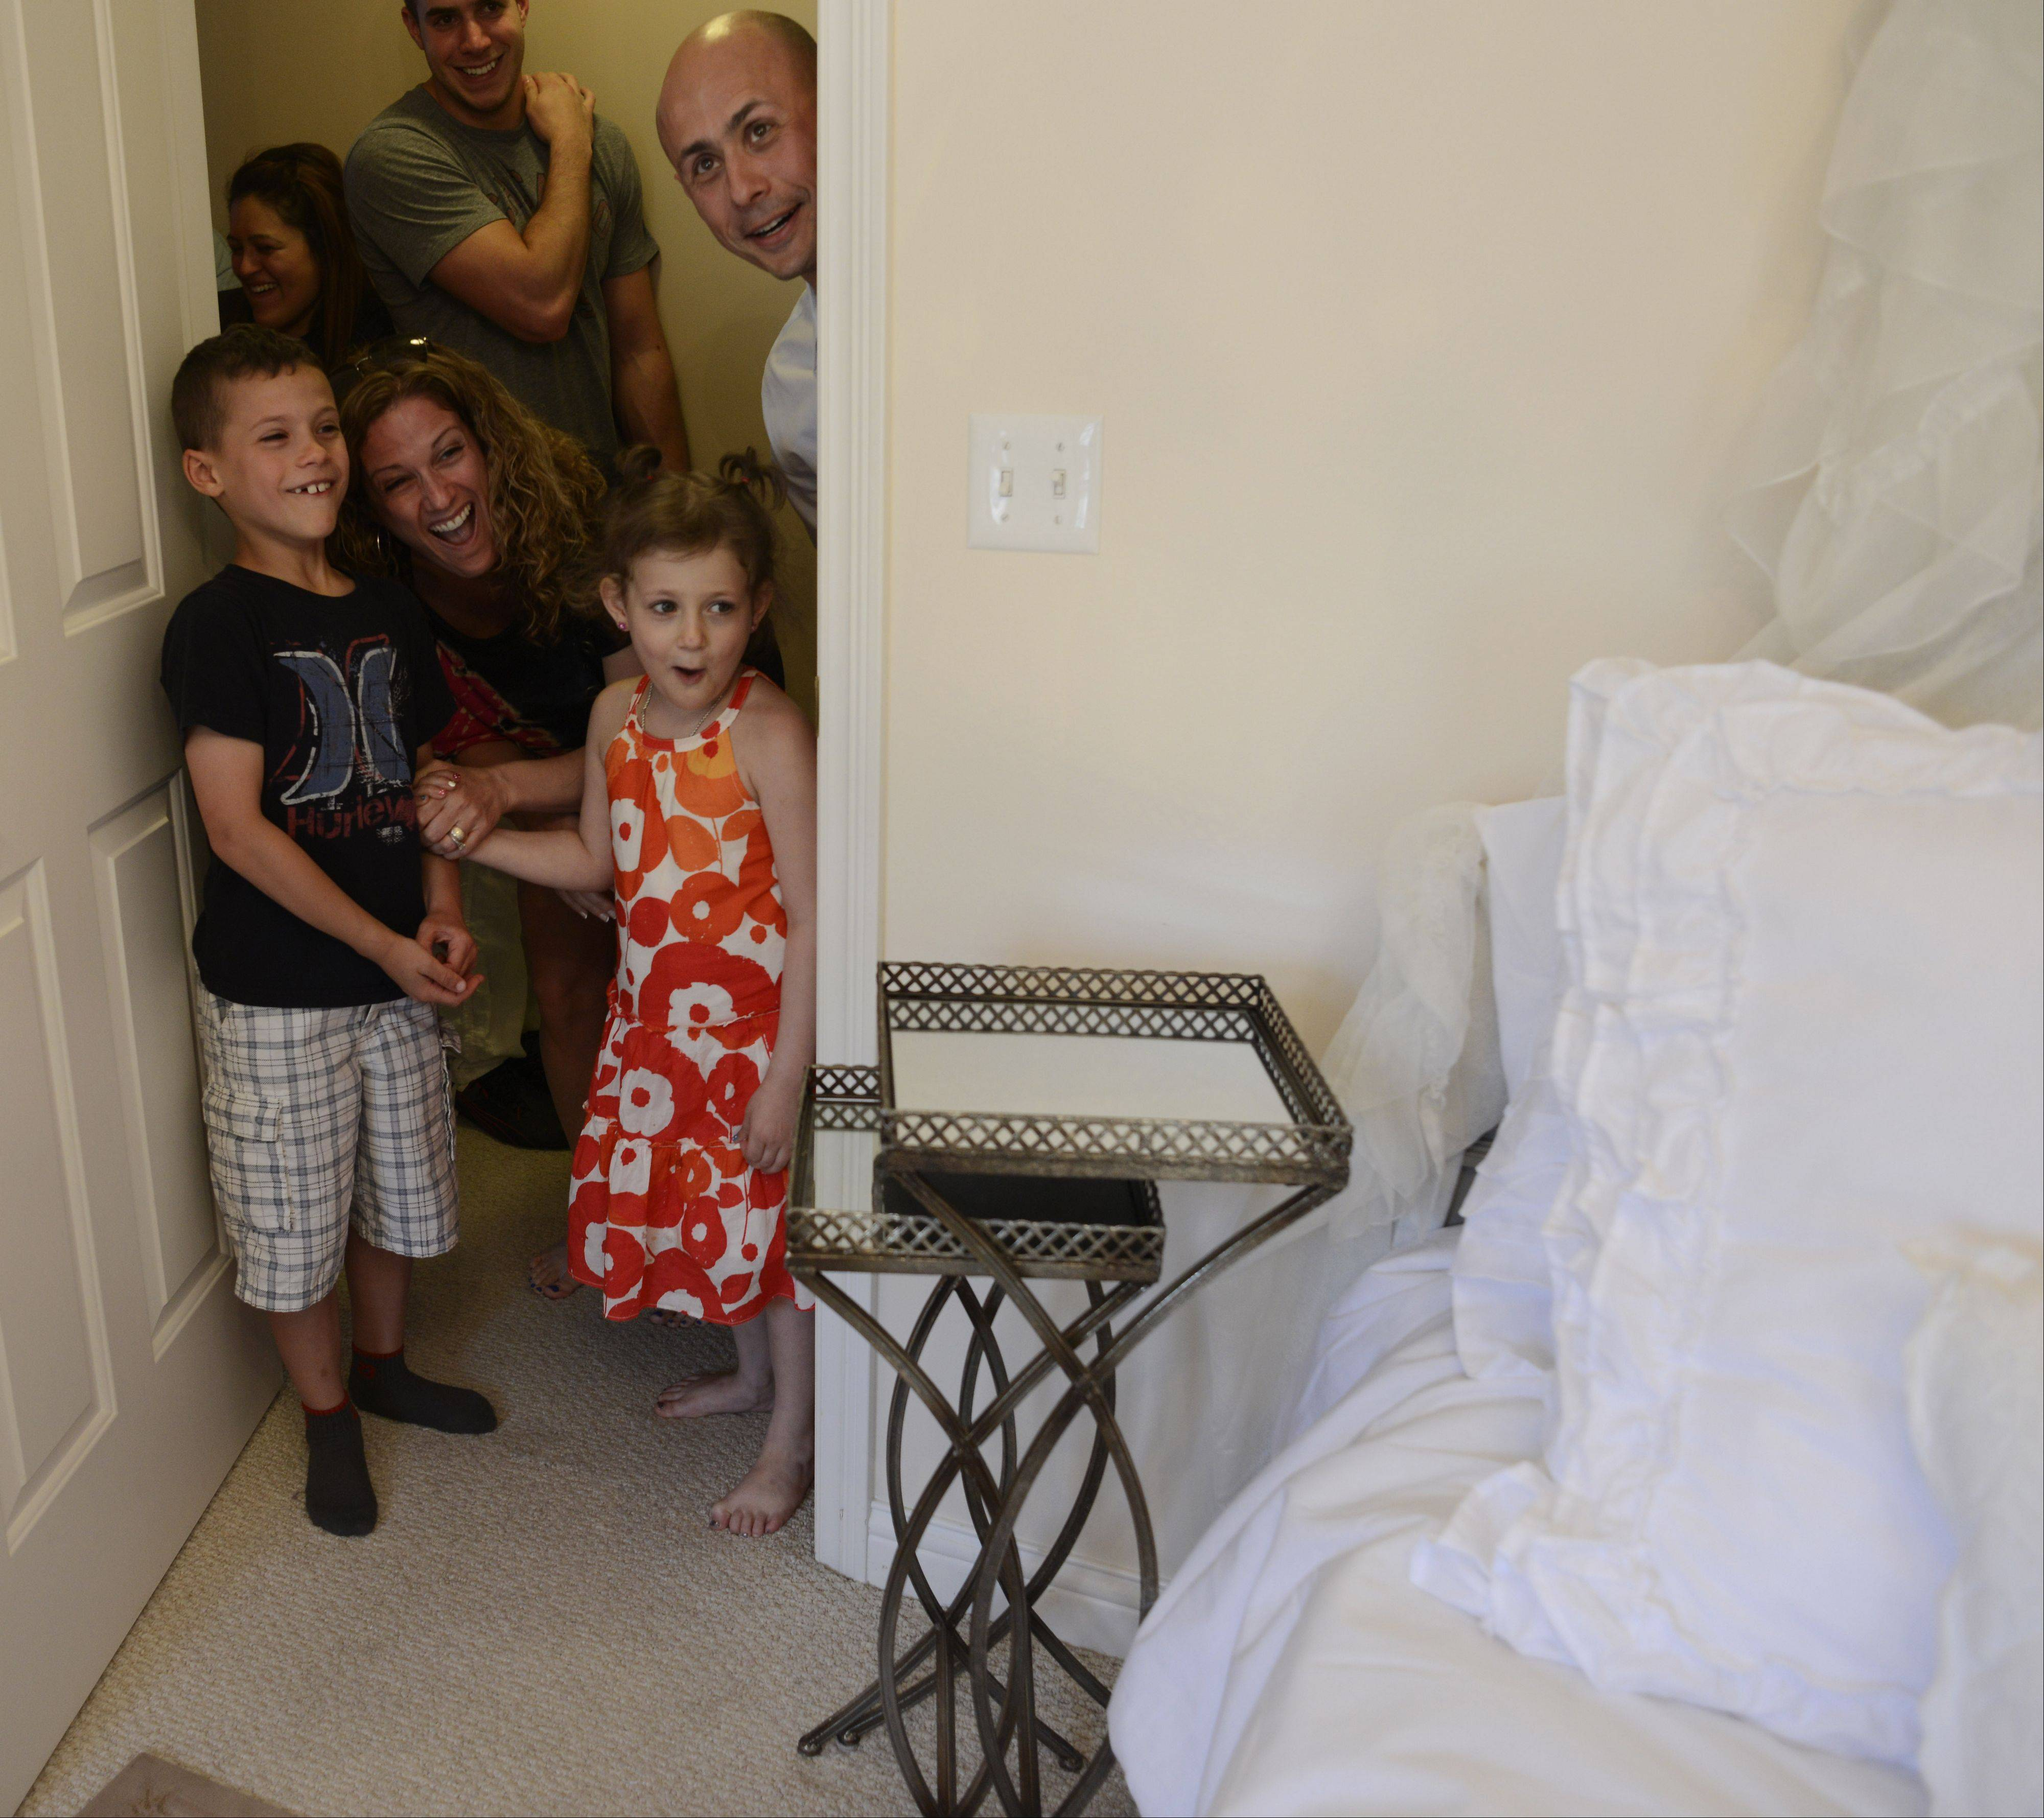 Kennedy Khalimsky, 6, of Palatine, reacts to her bedroom-makeover provided by the new Chicago-area chapter of Special Spaces National. Kennedy has been diagnosed with leukemia and is undergoing treatment. With her are her brother, Maddox, 8, her mom, Edan Gelt, and her dad, Gene Khalimsky, right.